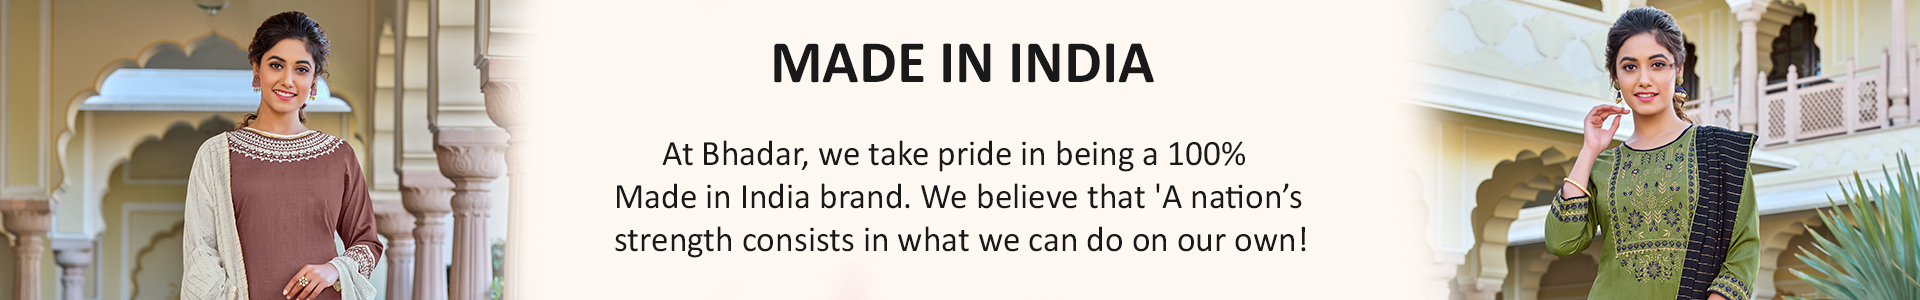 Bhadar Made in india